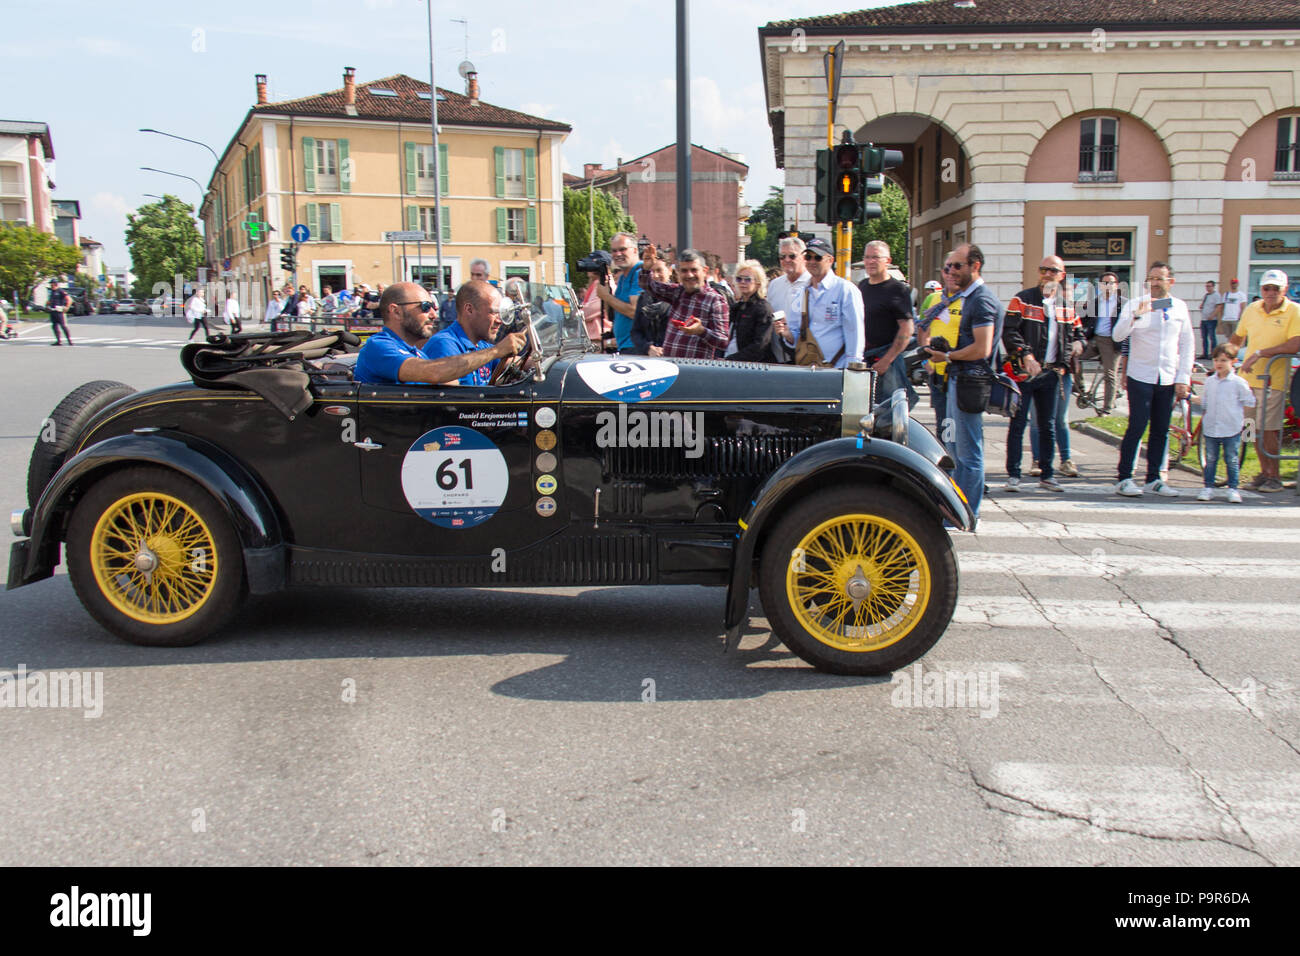 Brescia, Italy - May 19 2018: BUGATTI T 40 1929 is an old racing car in rally Mille Miglia 2018, live shot at the famous italian historical race on Ma - Stock Image